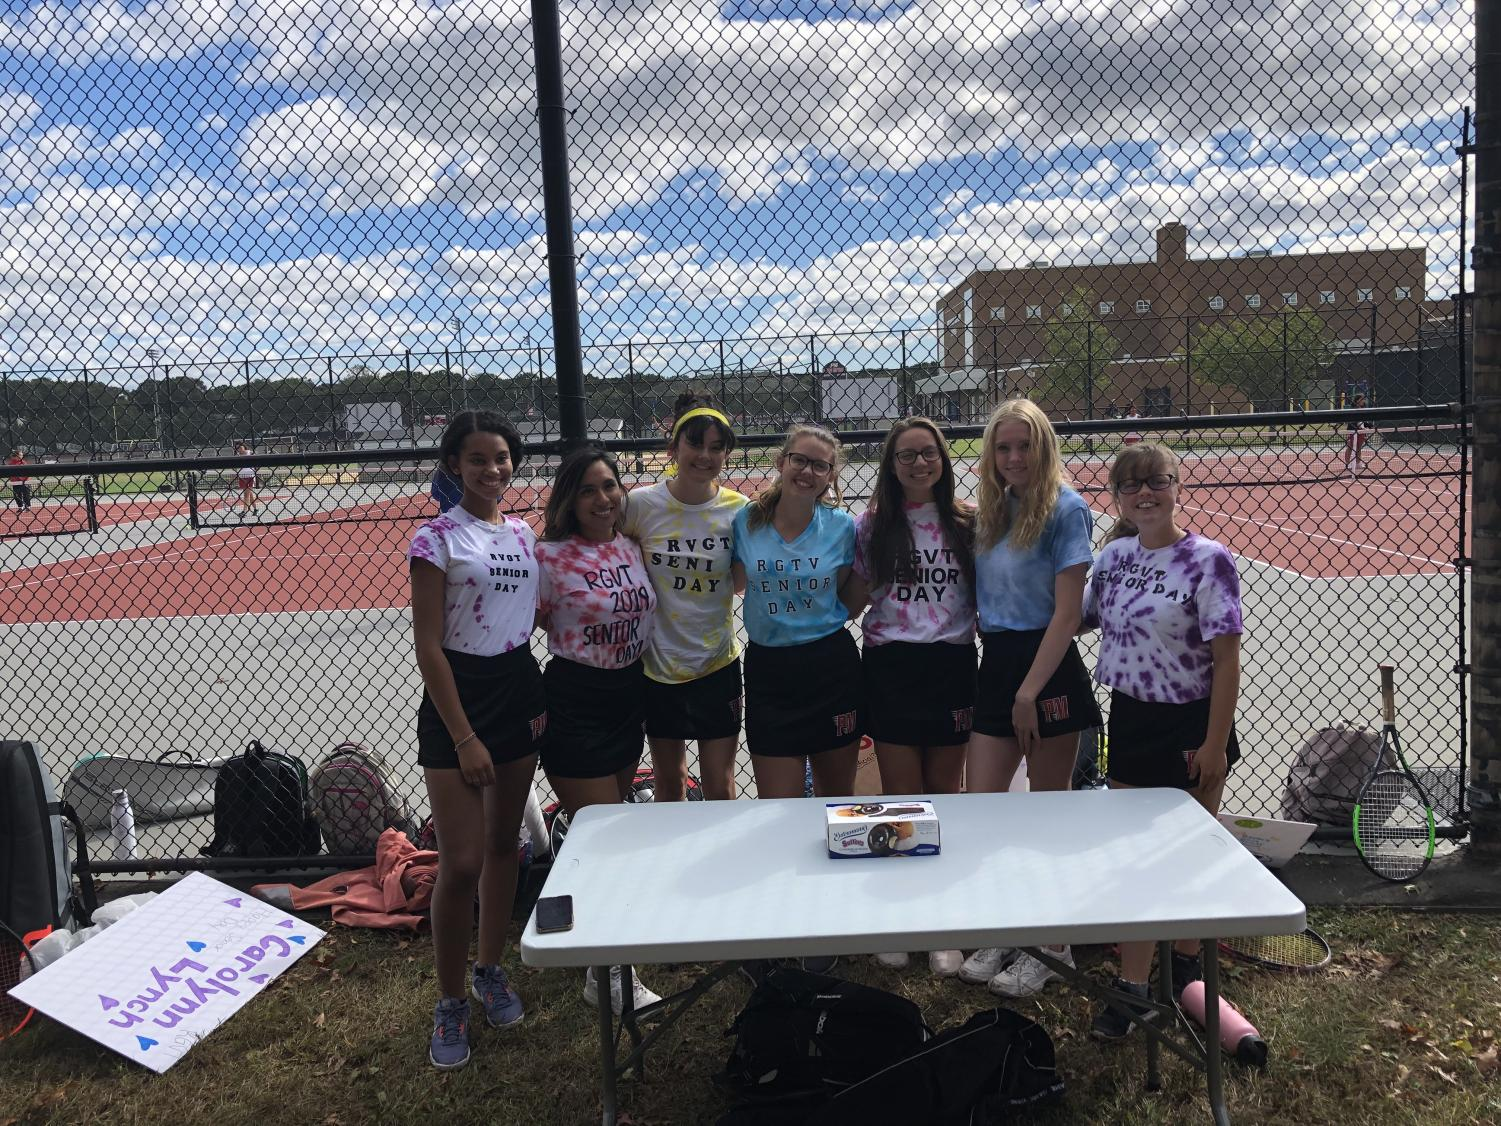 (listed left to right) Seniors who were celebrated during the big day: Chloe, Ang, Delaney, Phoebe, Nicole, Cat, and Carolynn